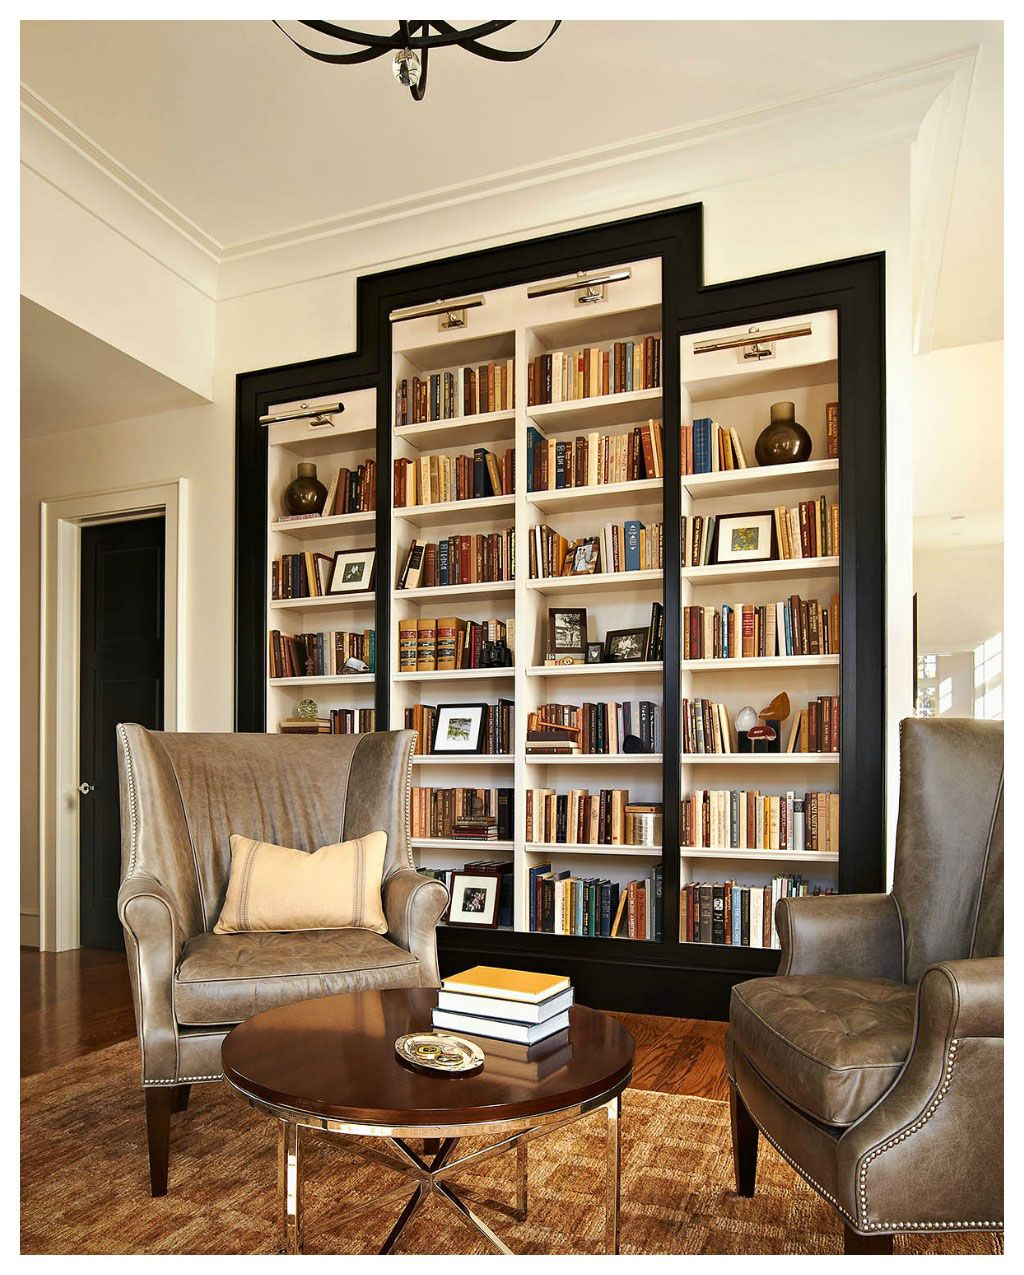 Interior design of luxury modern reading room decorating ideas and house design luxury modern reading room decorating ideas